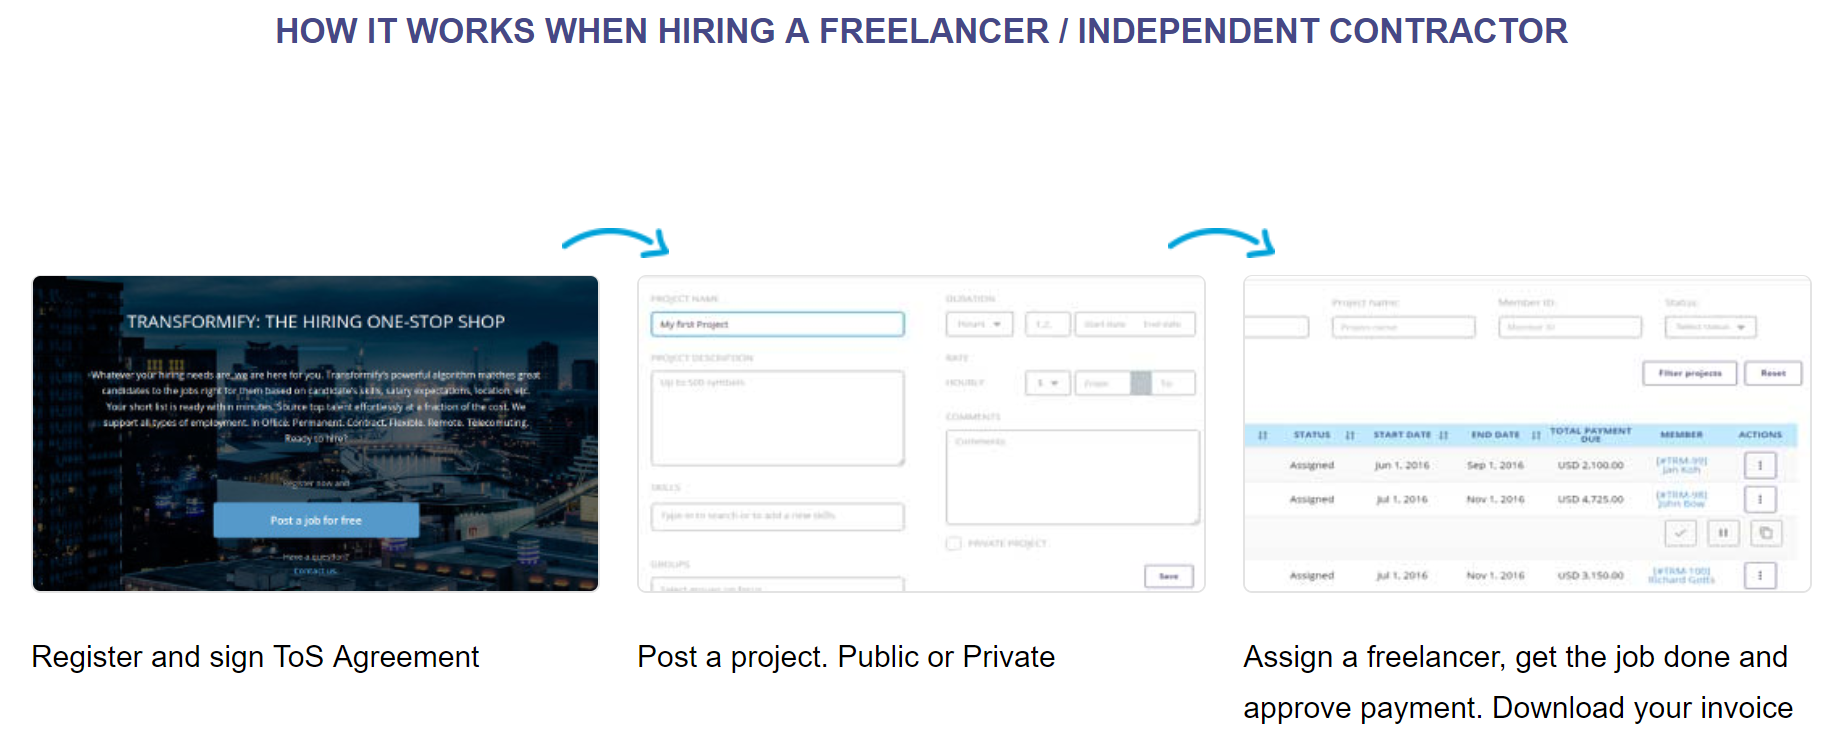 Contract Hiring, Freelance Jobs from home